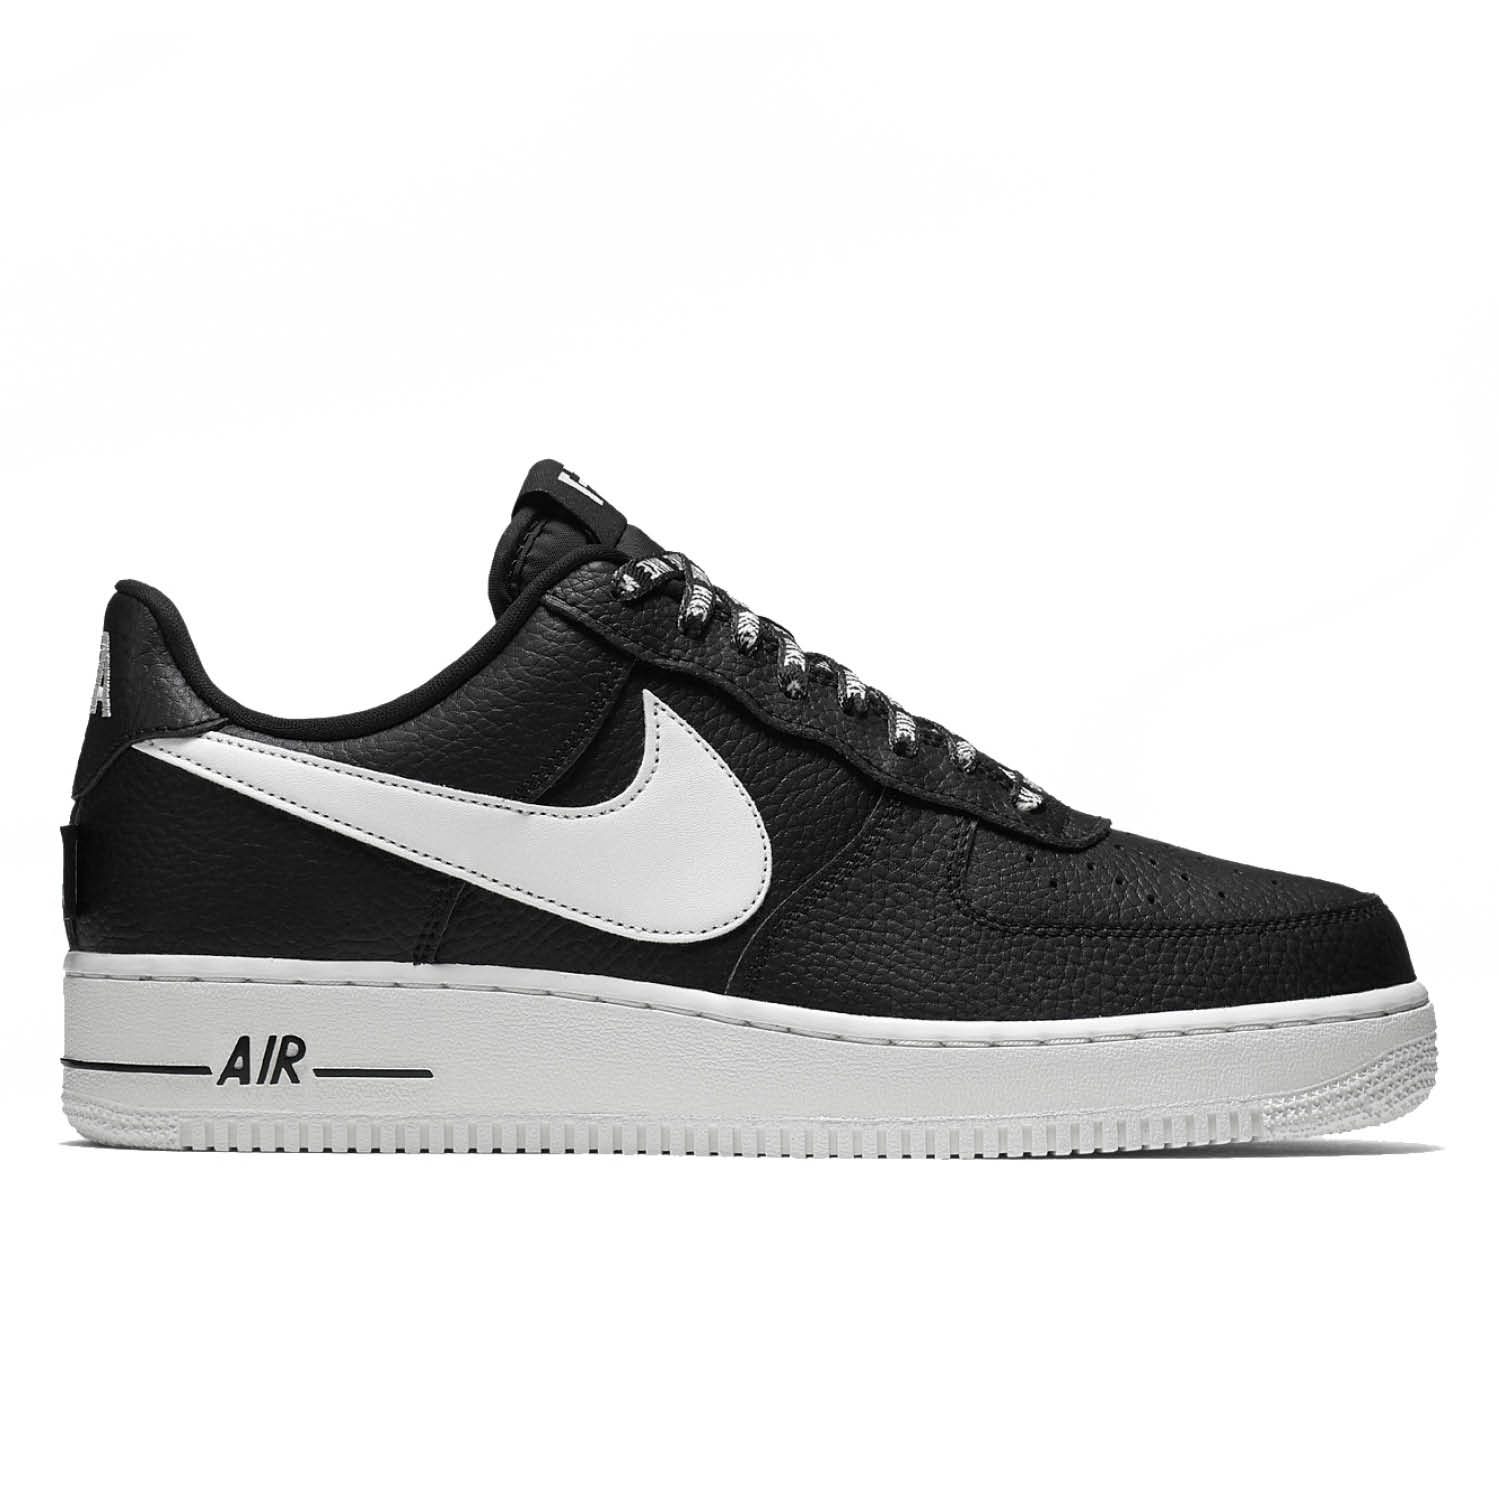 brand new 16fc2 cbd95 Nike Air Force 1 Low 07 LV8 Statement Game 823511 007 .